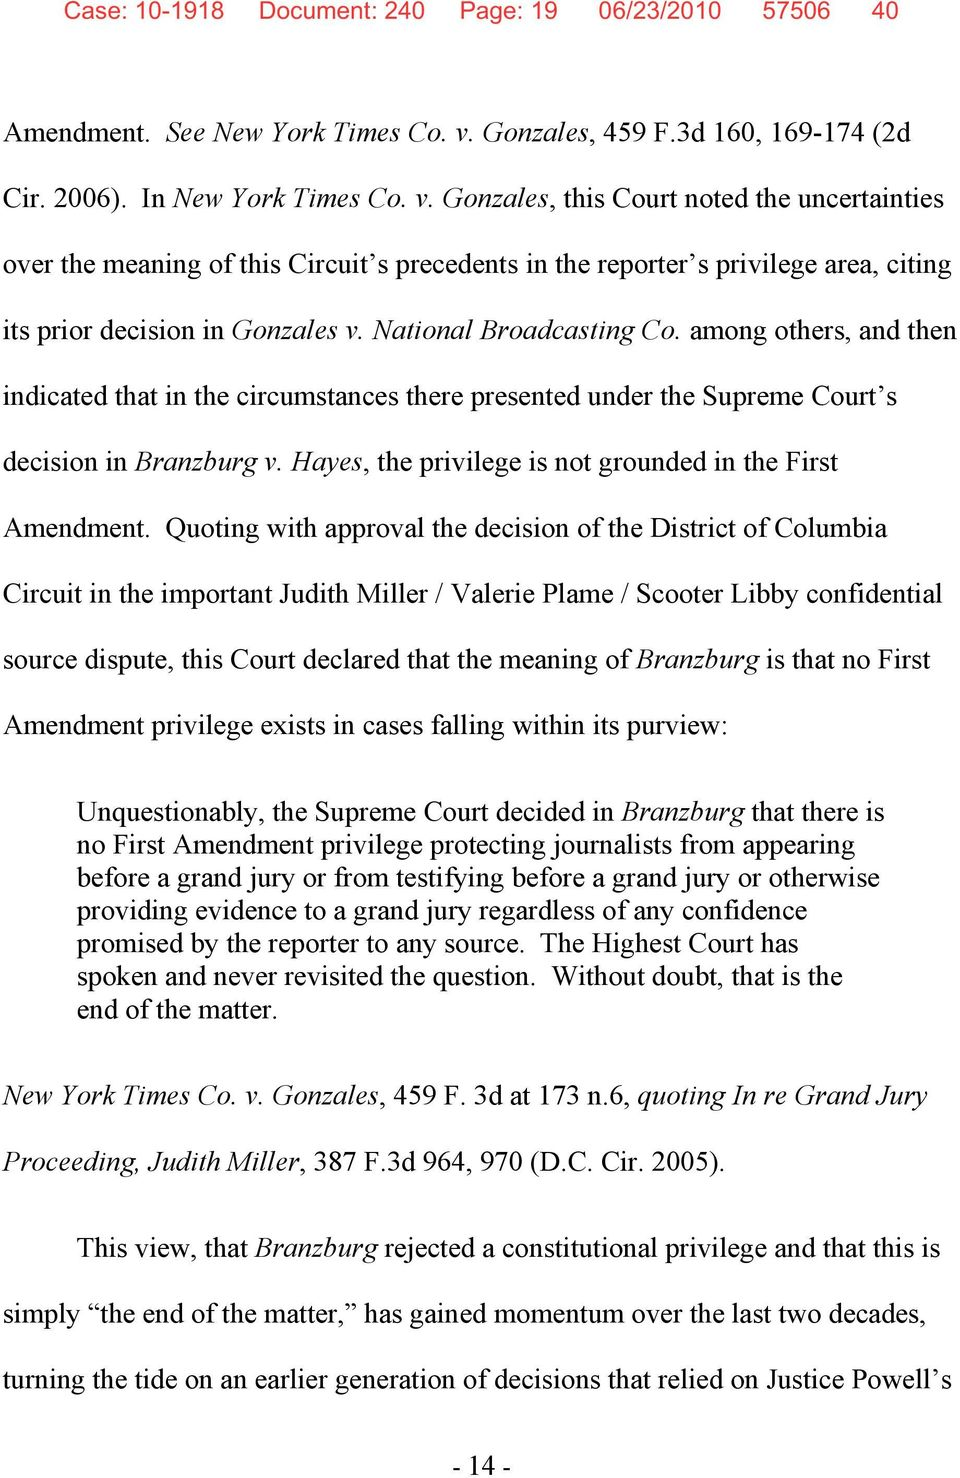 Gonzales, this Court noted the uncertainties over the meaning of this Circuit s precedents in the reporter s privilege area, citing its prior decision in Gonzales v. National Broadcasting Co.